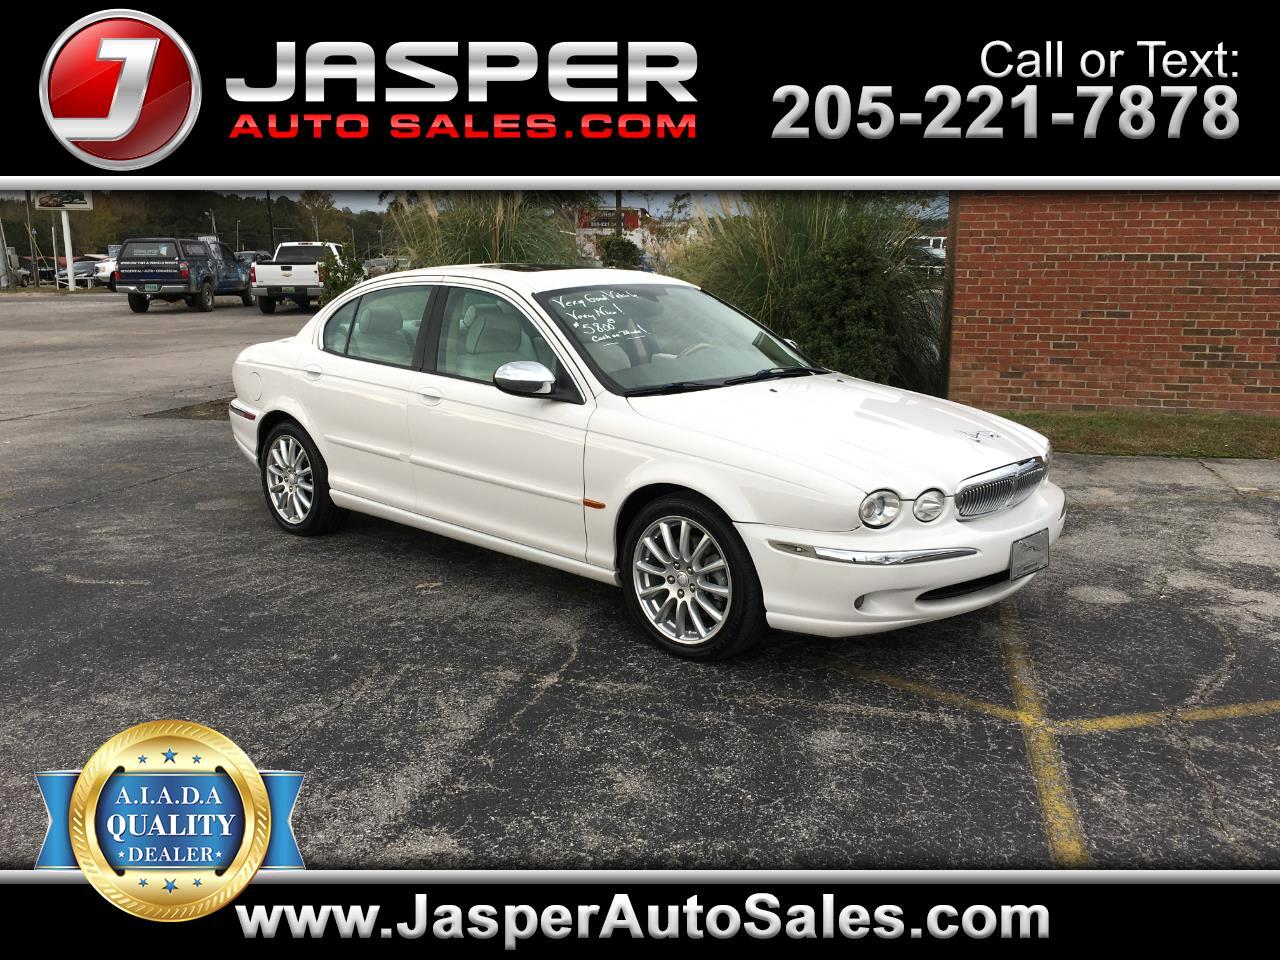 2005 Jaguar X-Type 4dr Sdn 3.0L *Ltd Avail*